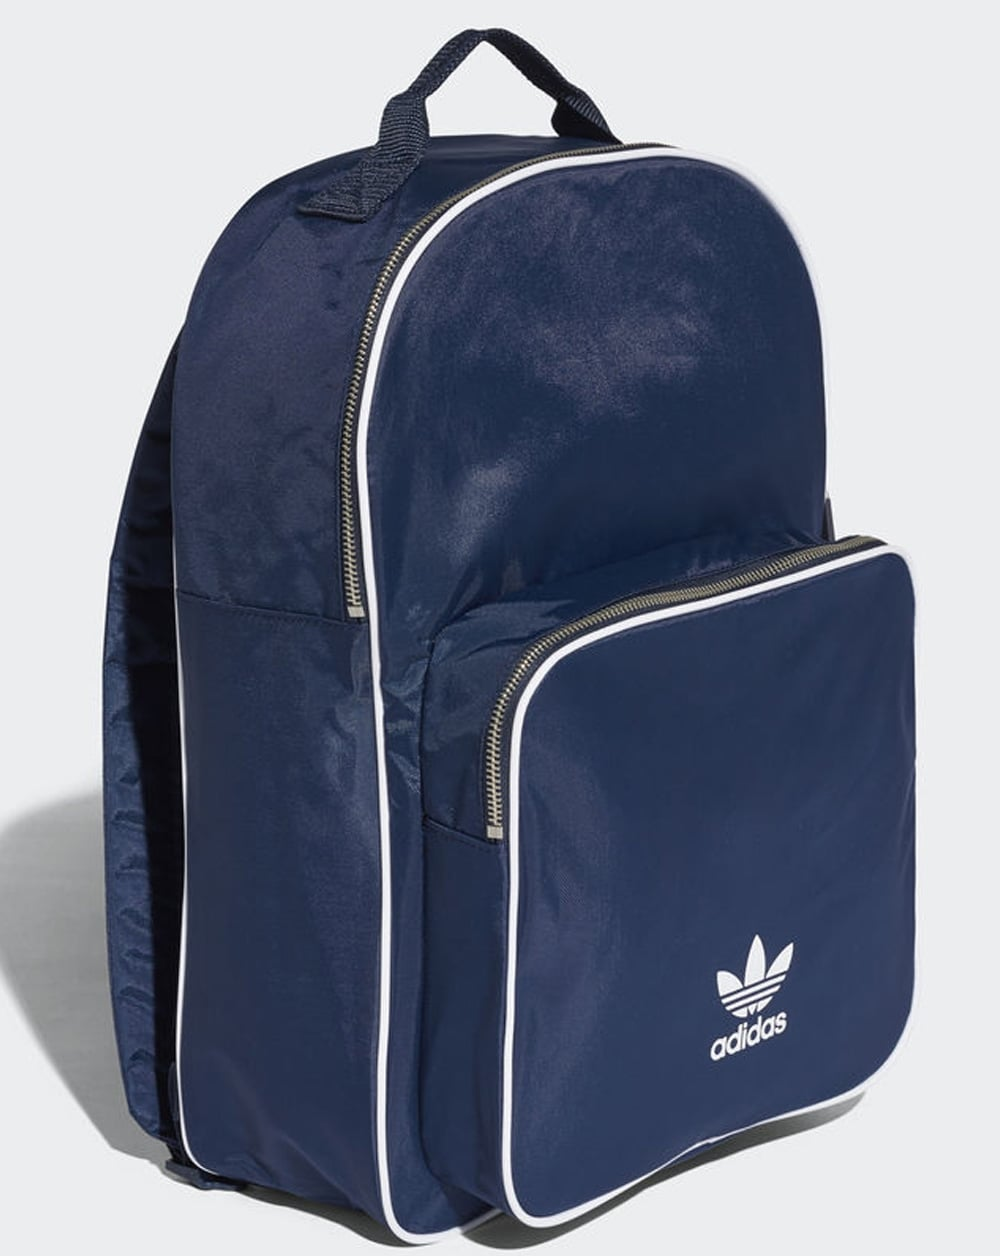 8c8bba12728 Adidas Originals Adicolor Backpack Navy, bag, padded, laptop, pocket